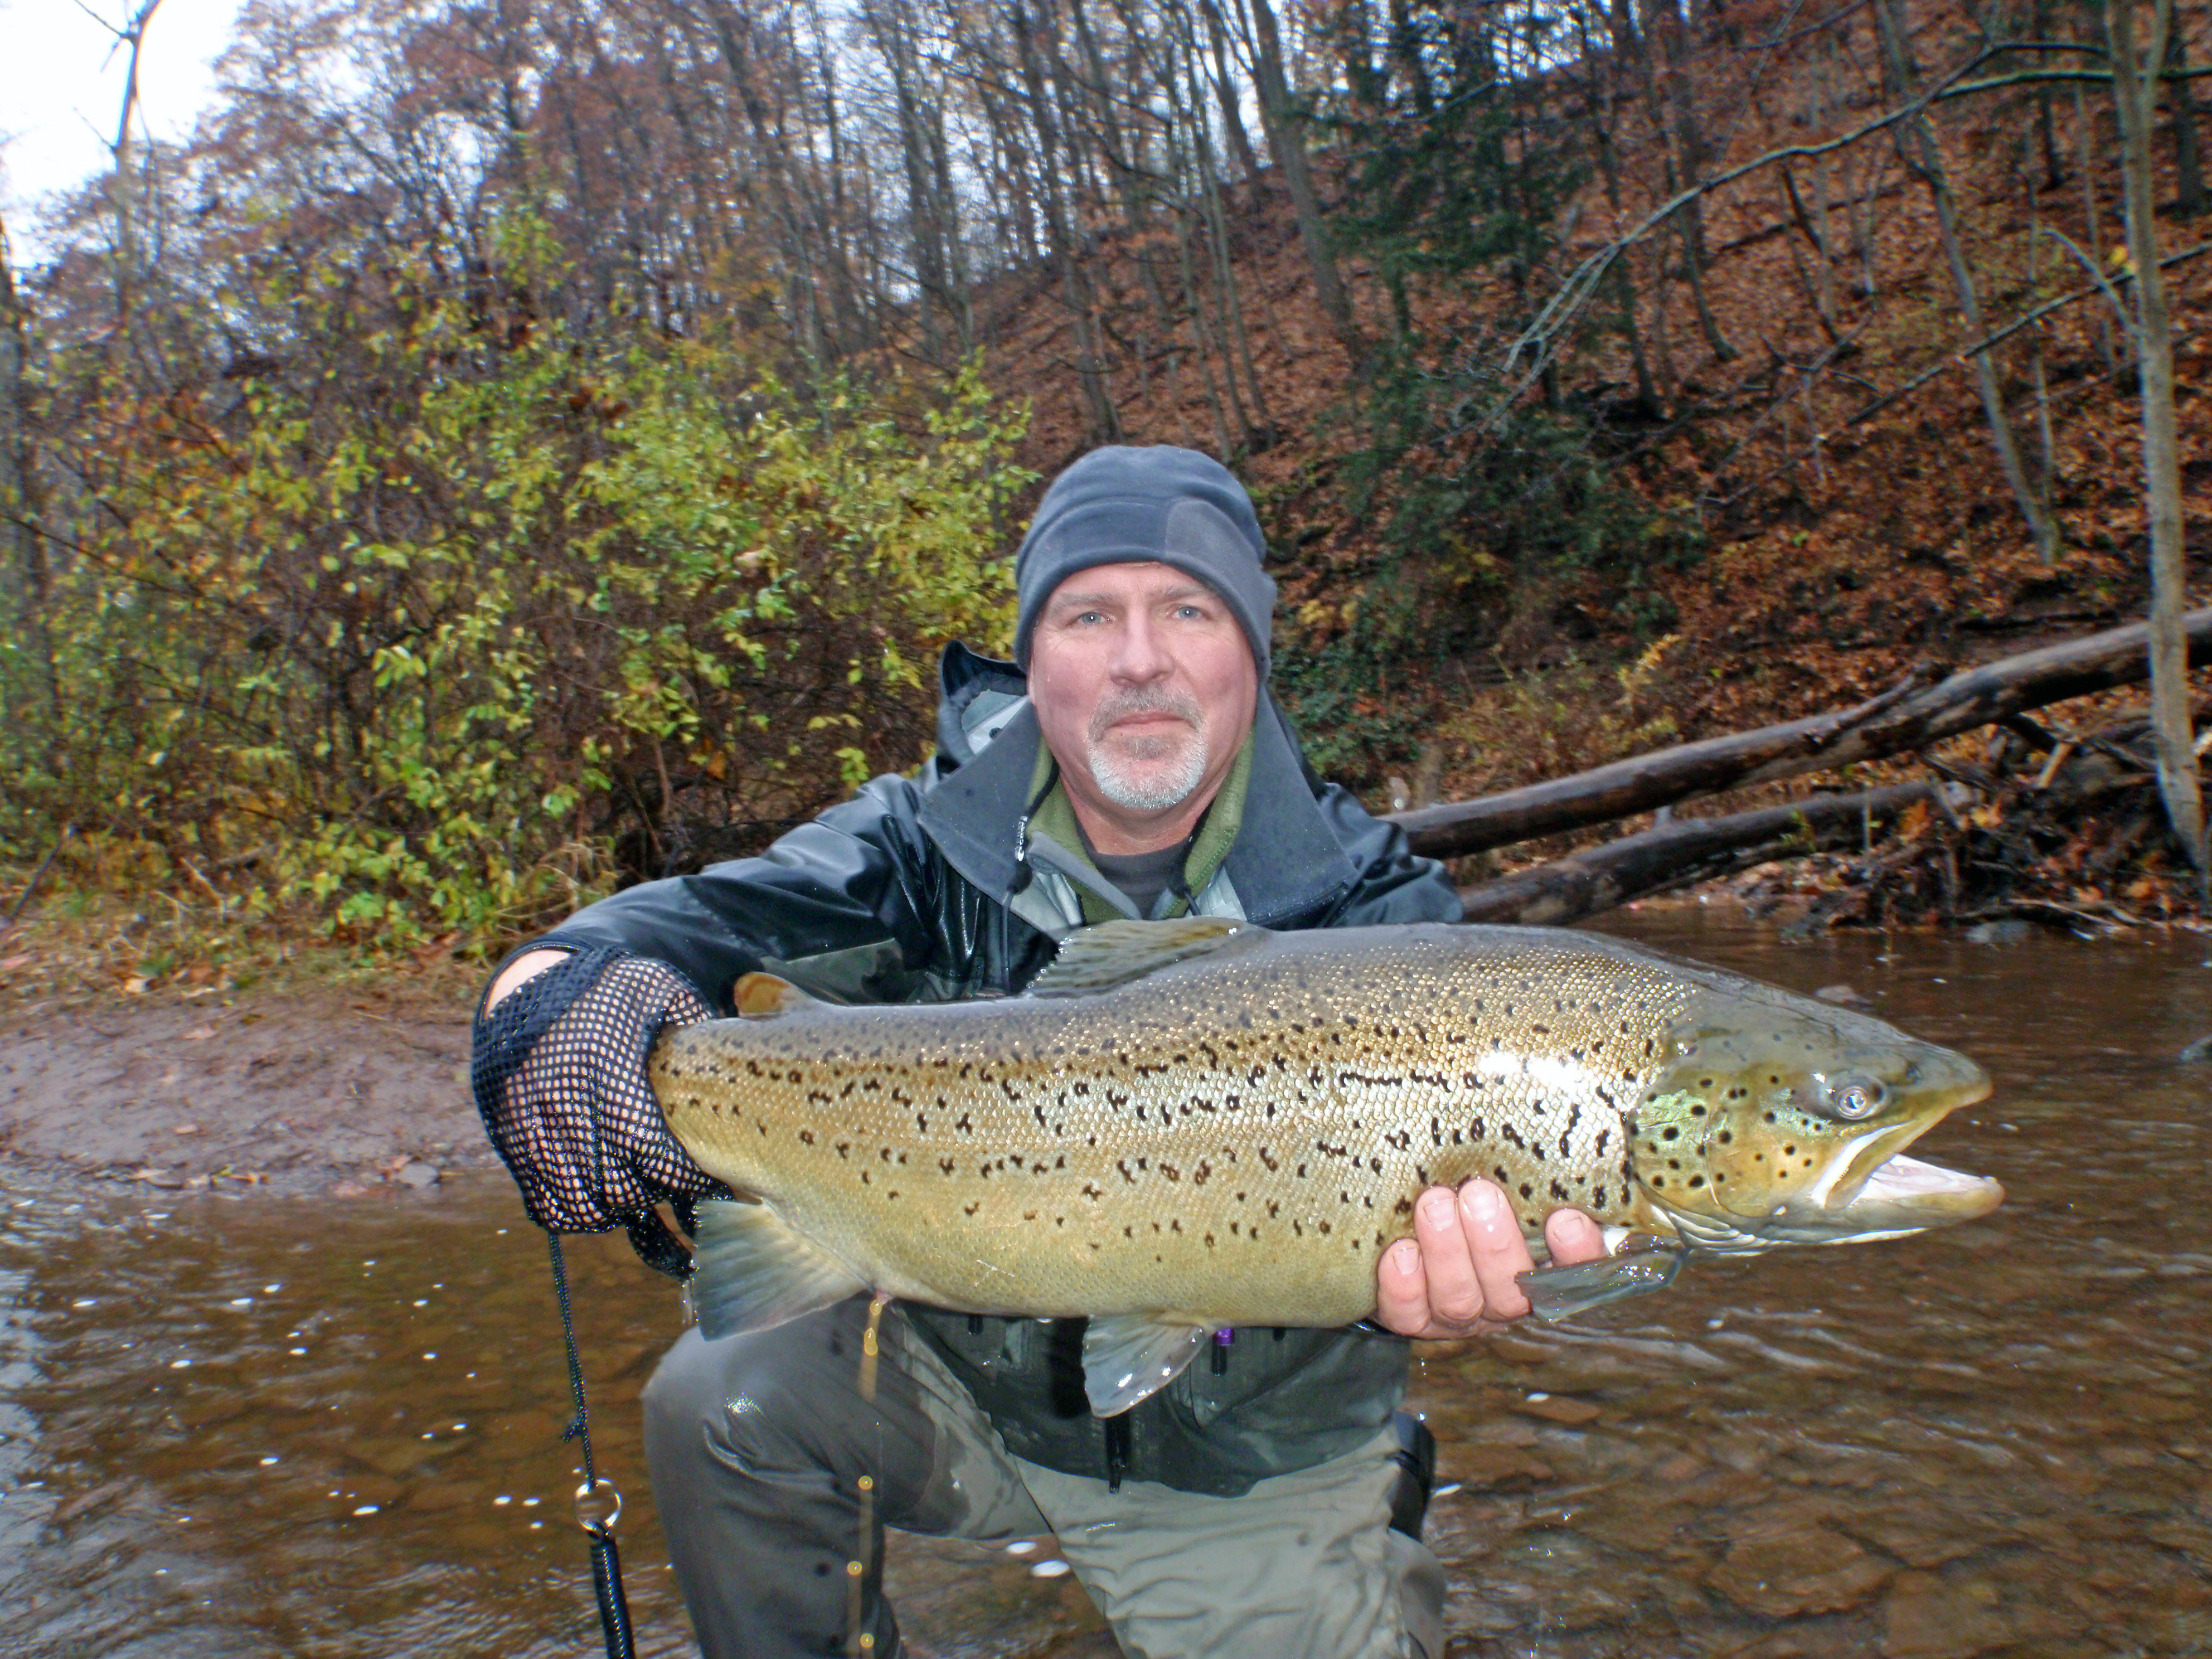 Oak Orchard River Guide Service: Brown Trout Fishing - Full Day